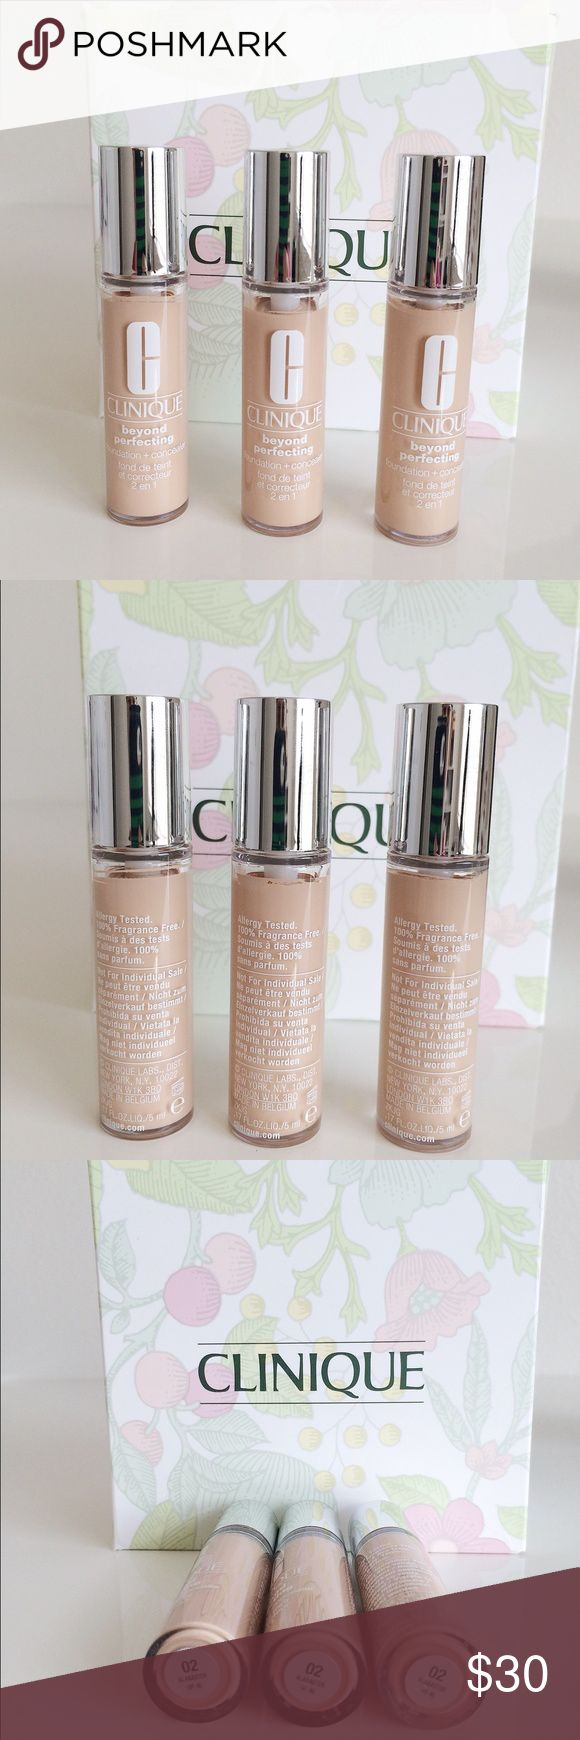 Clinique beyond perfecting concealer + Foundation Three beyond perfecting foundation + Concealers in color 02 alabaster. Brand new unopened travel sizes. A little definitely goes a LONG way with this foundation/concealer as it is a heavy coverage. Clinique Makeup Concealer